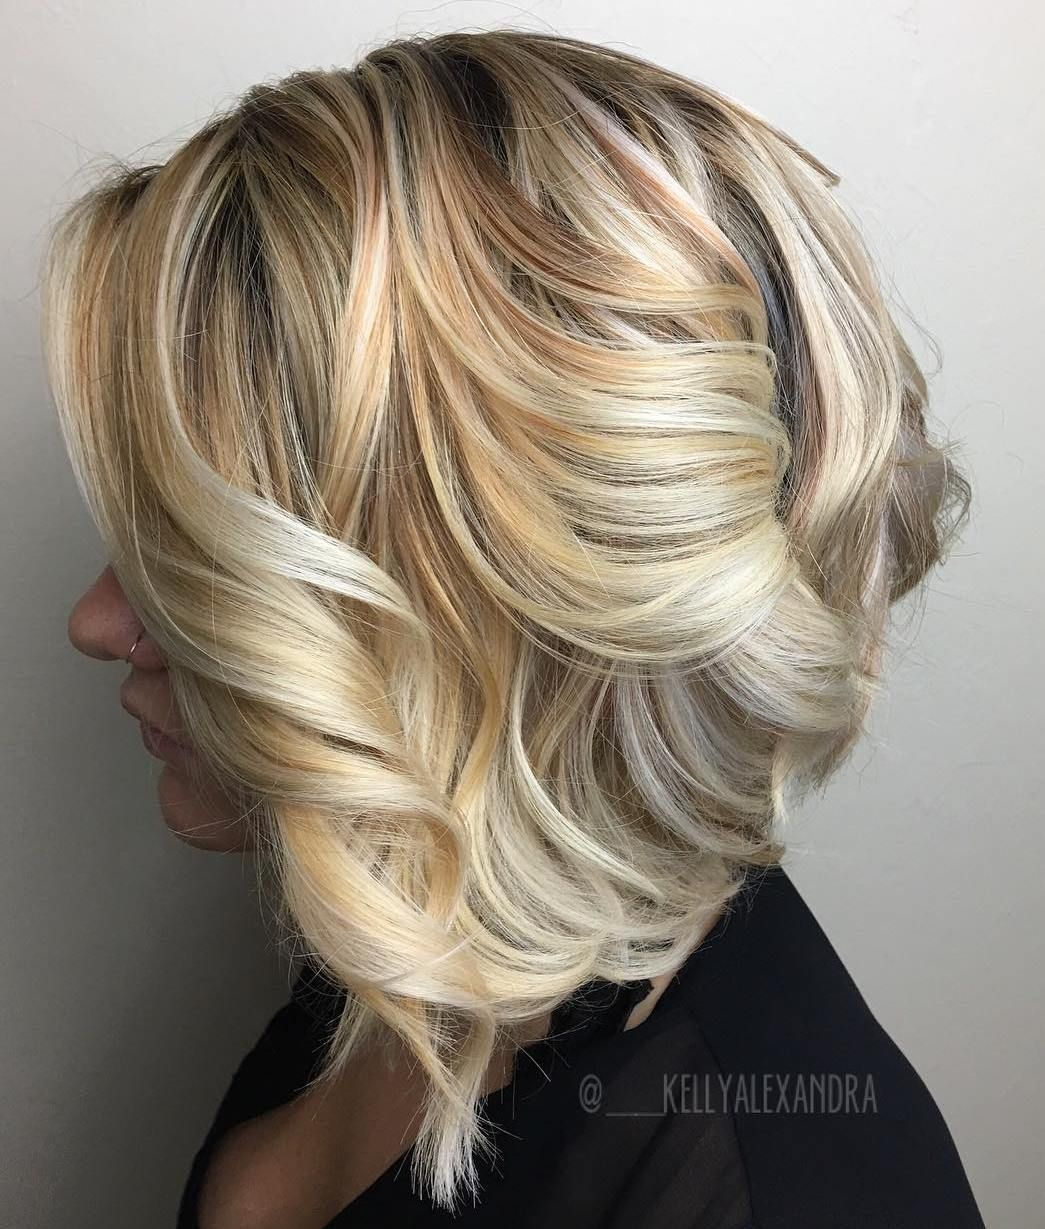 Admirable 25 Special Occasion Hairstyles Wavy Bob Hairstyles Hair Styles Schematic Wiring Diagrams Amerangerunnerswayorg